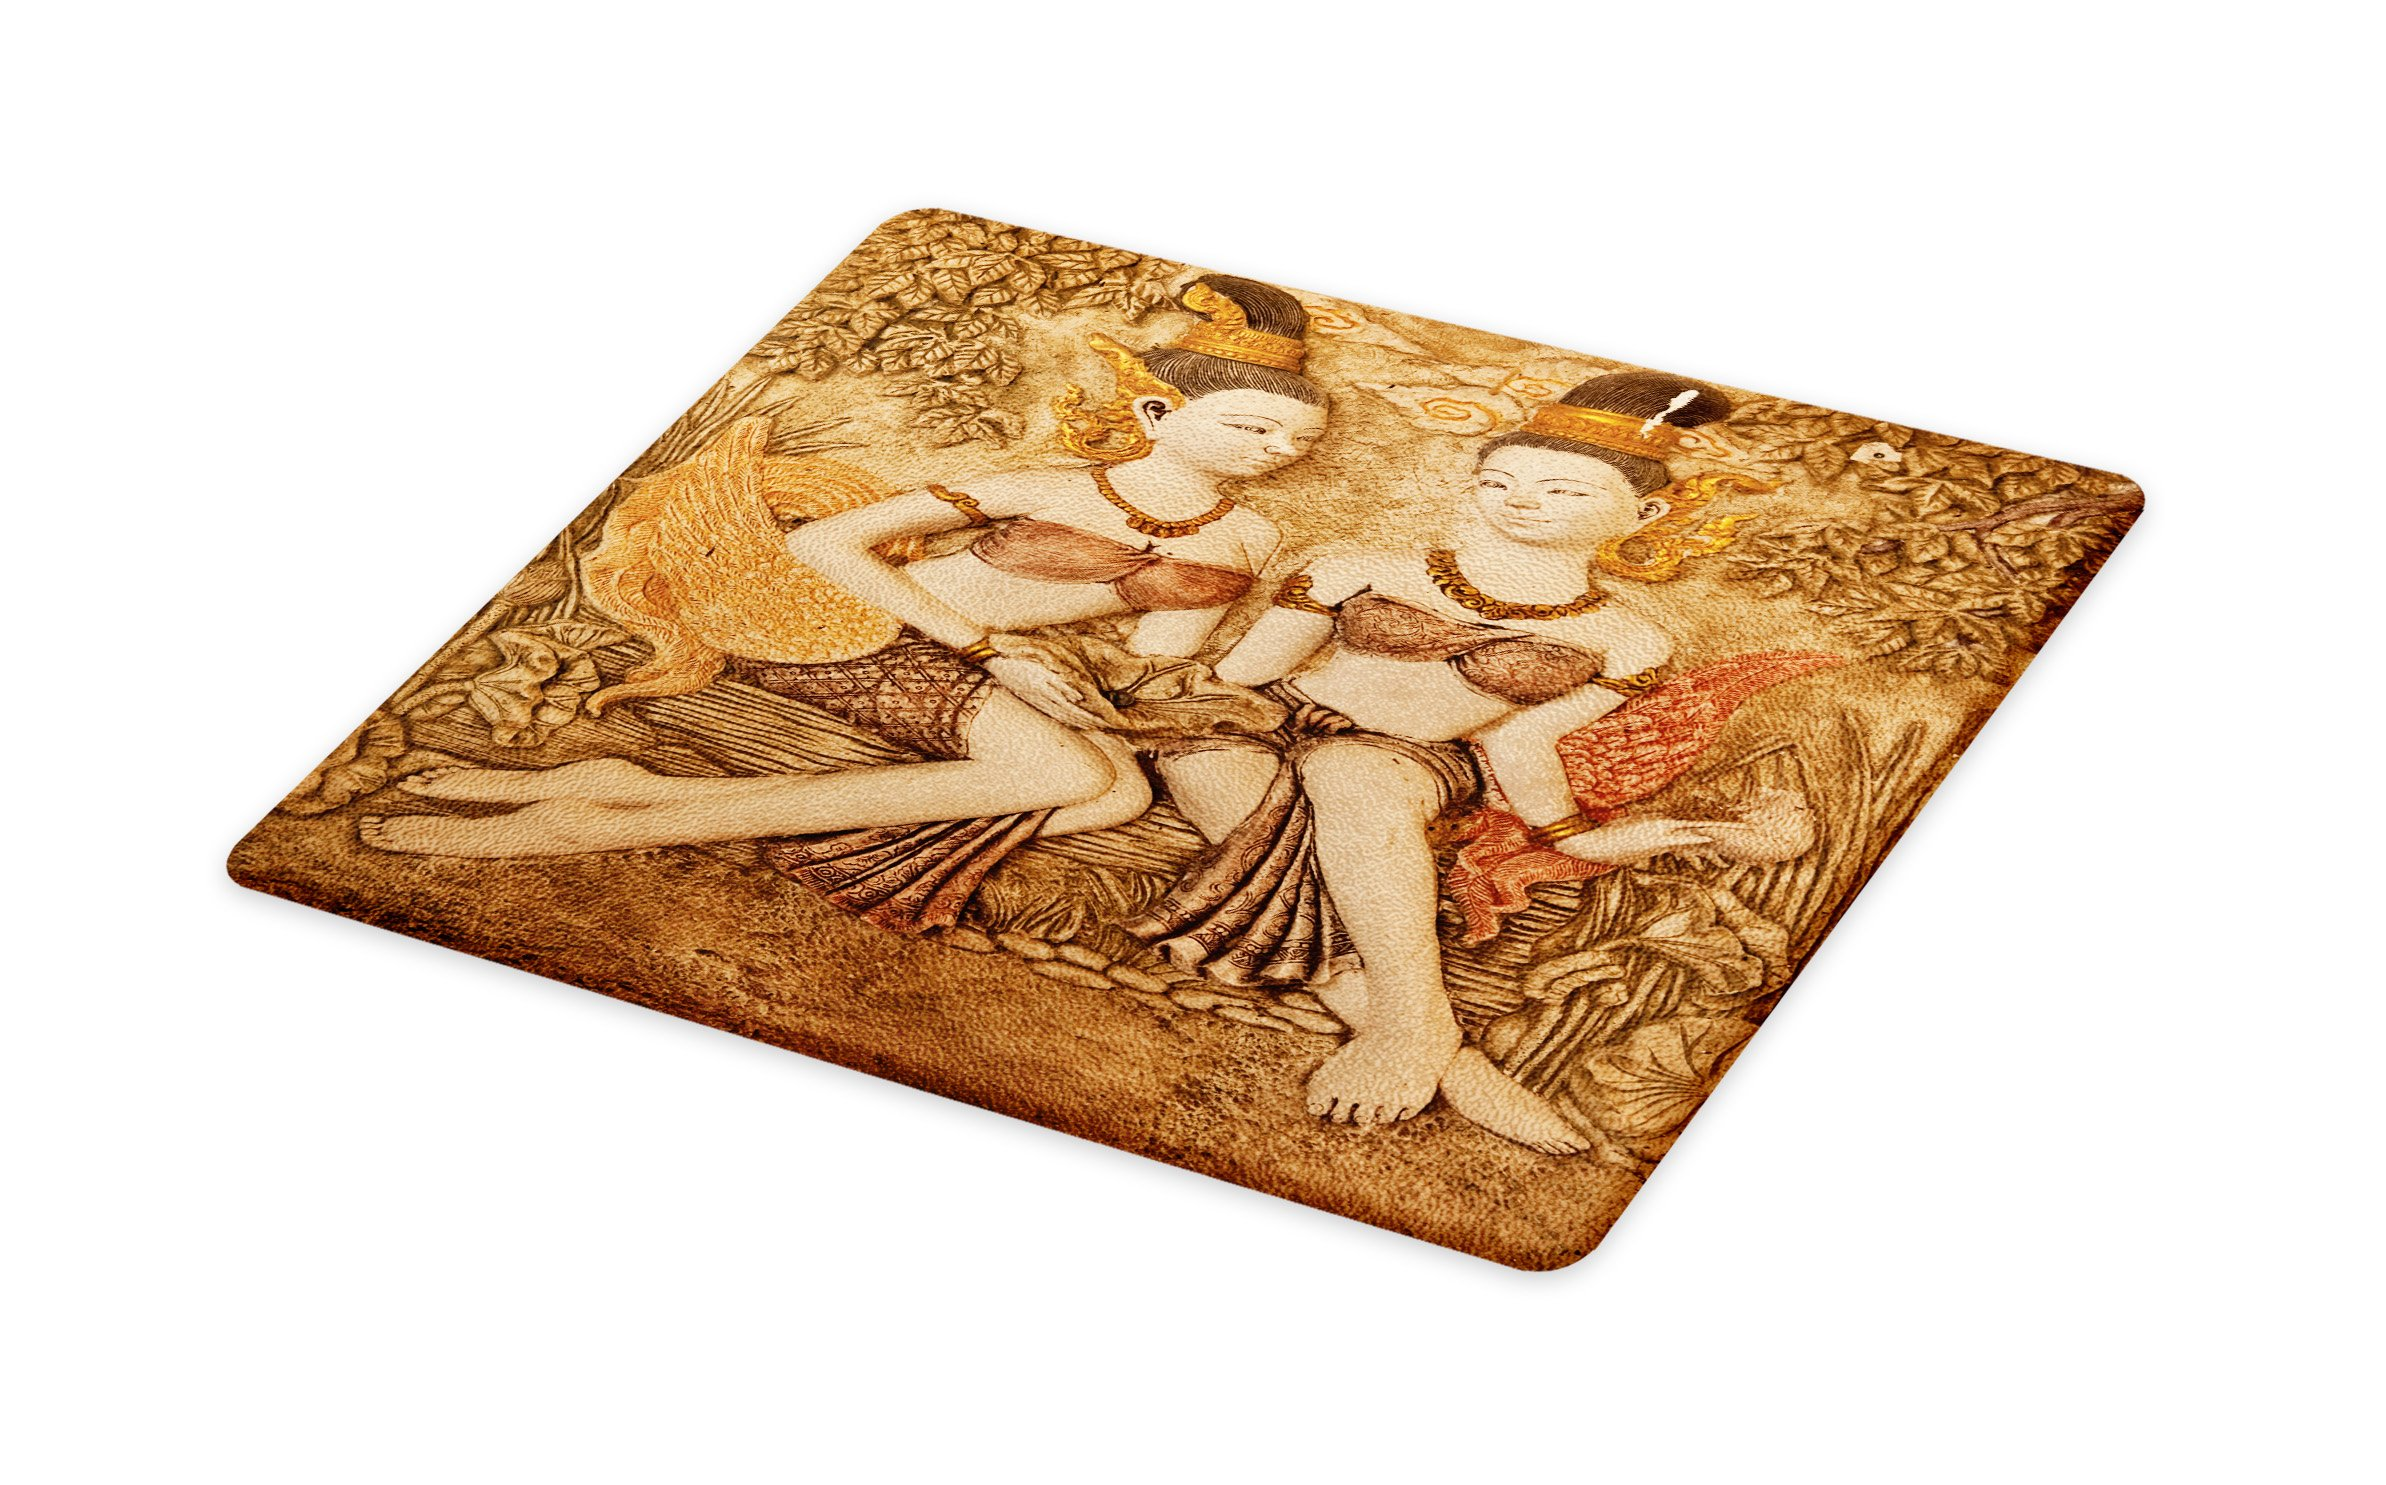 Lunarable Sculptures Cutting Board, Native Thai Style Molding Art Asian Traditional Attire Temple Culture, Decorative Tempered Glass Cutting and Serving Board, Small Size, Beige Brown Gold